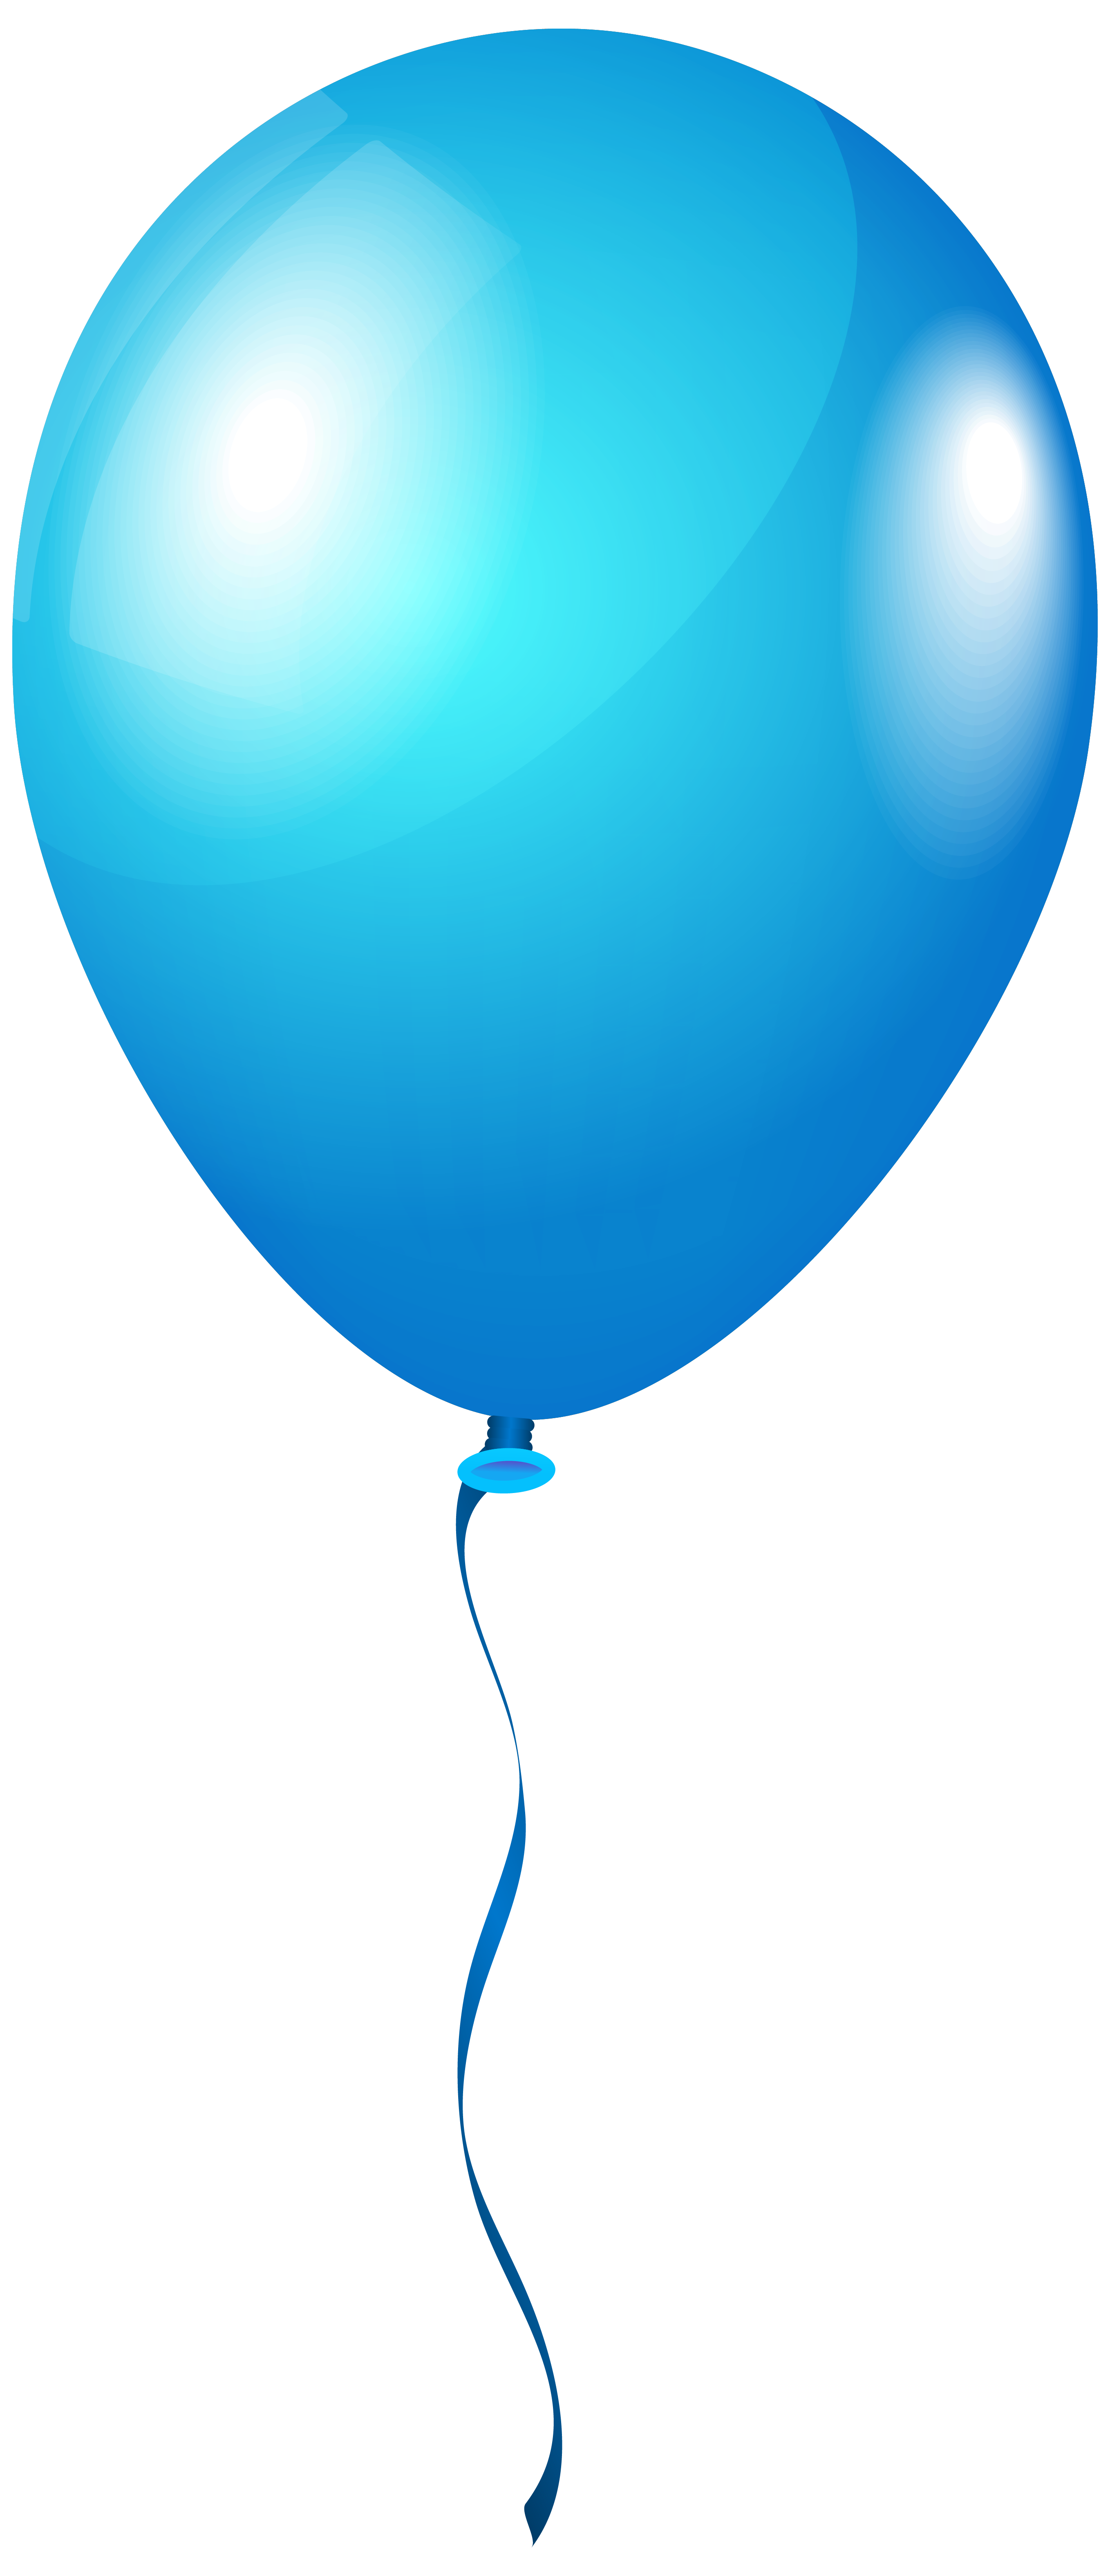 2716x6301 Single Blueballoon Png Clipart Imageu200b Gallery Yopriceville